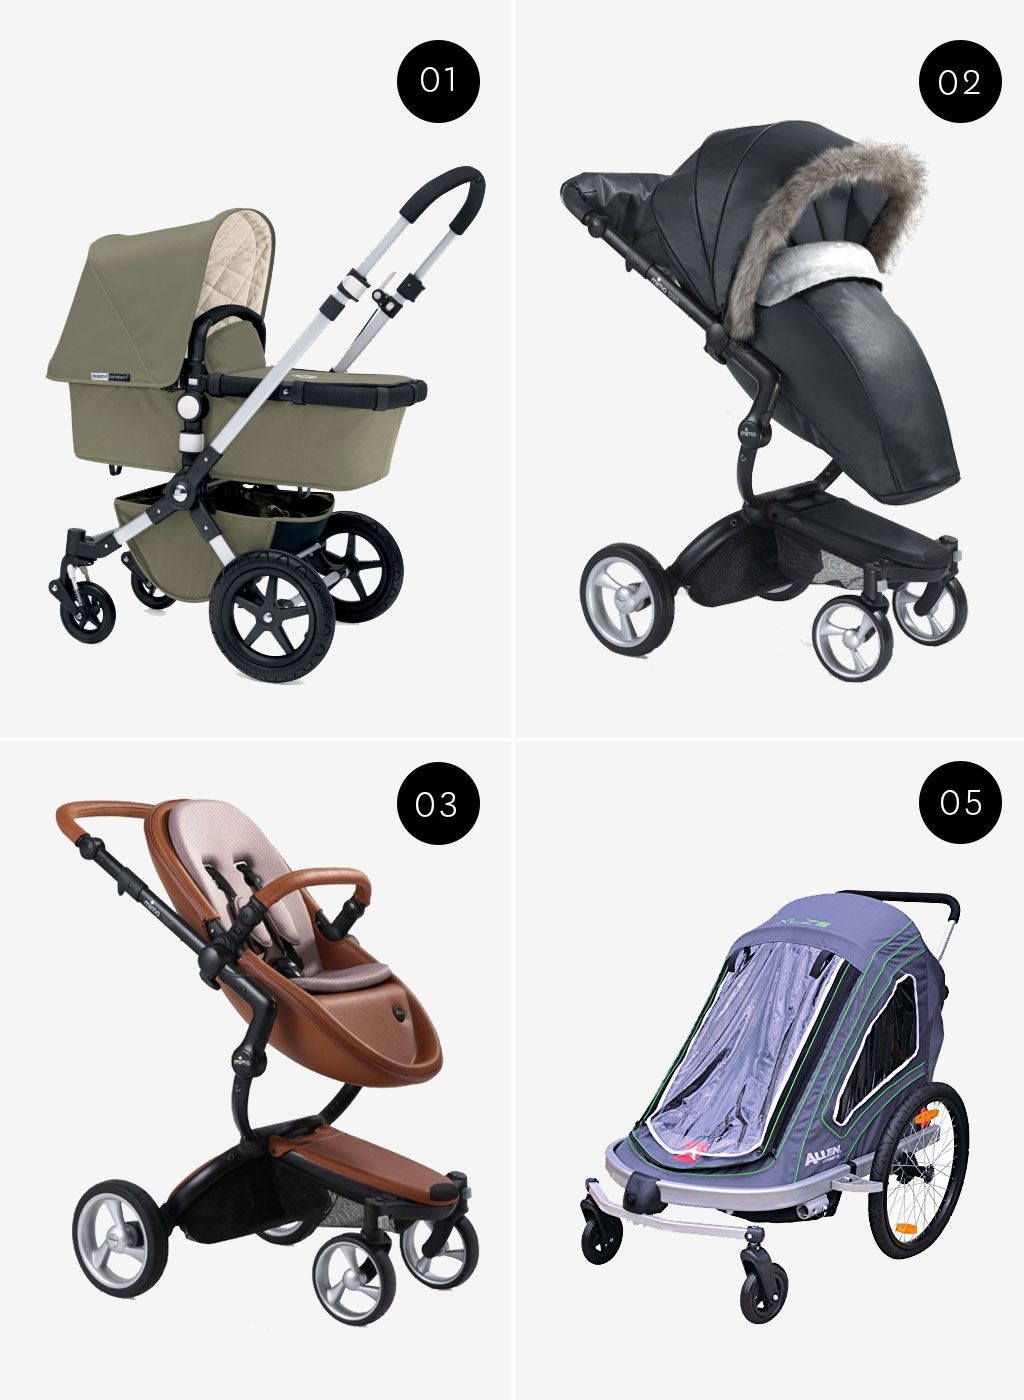 Mima Pram Winter Kit Best Design Baby Gear For Dads Insidehook Mima Products